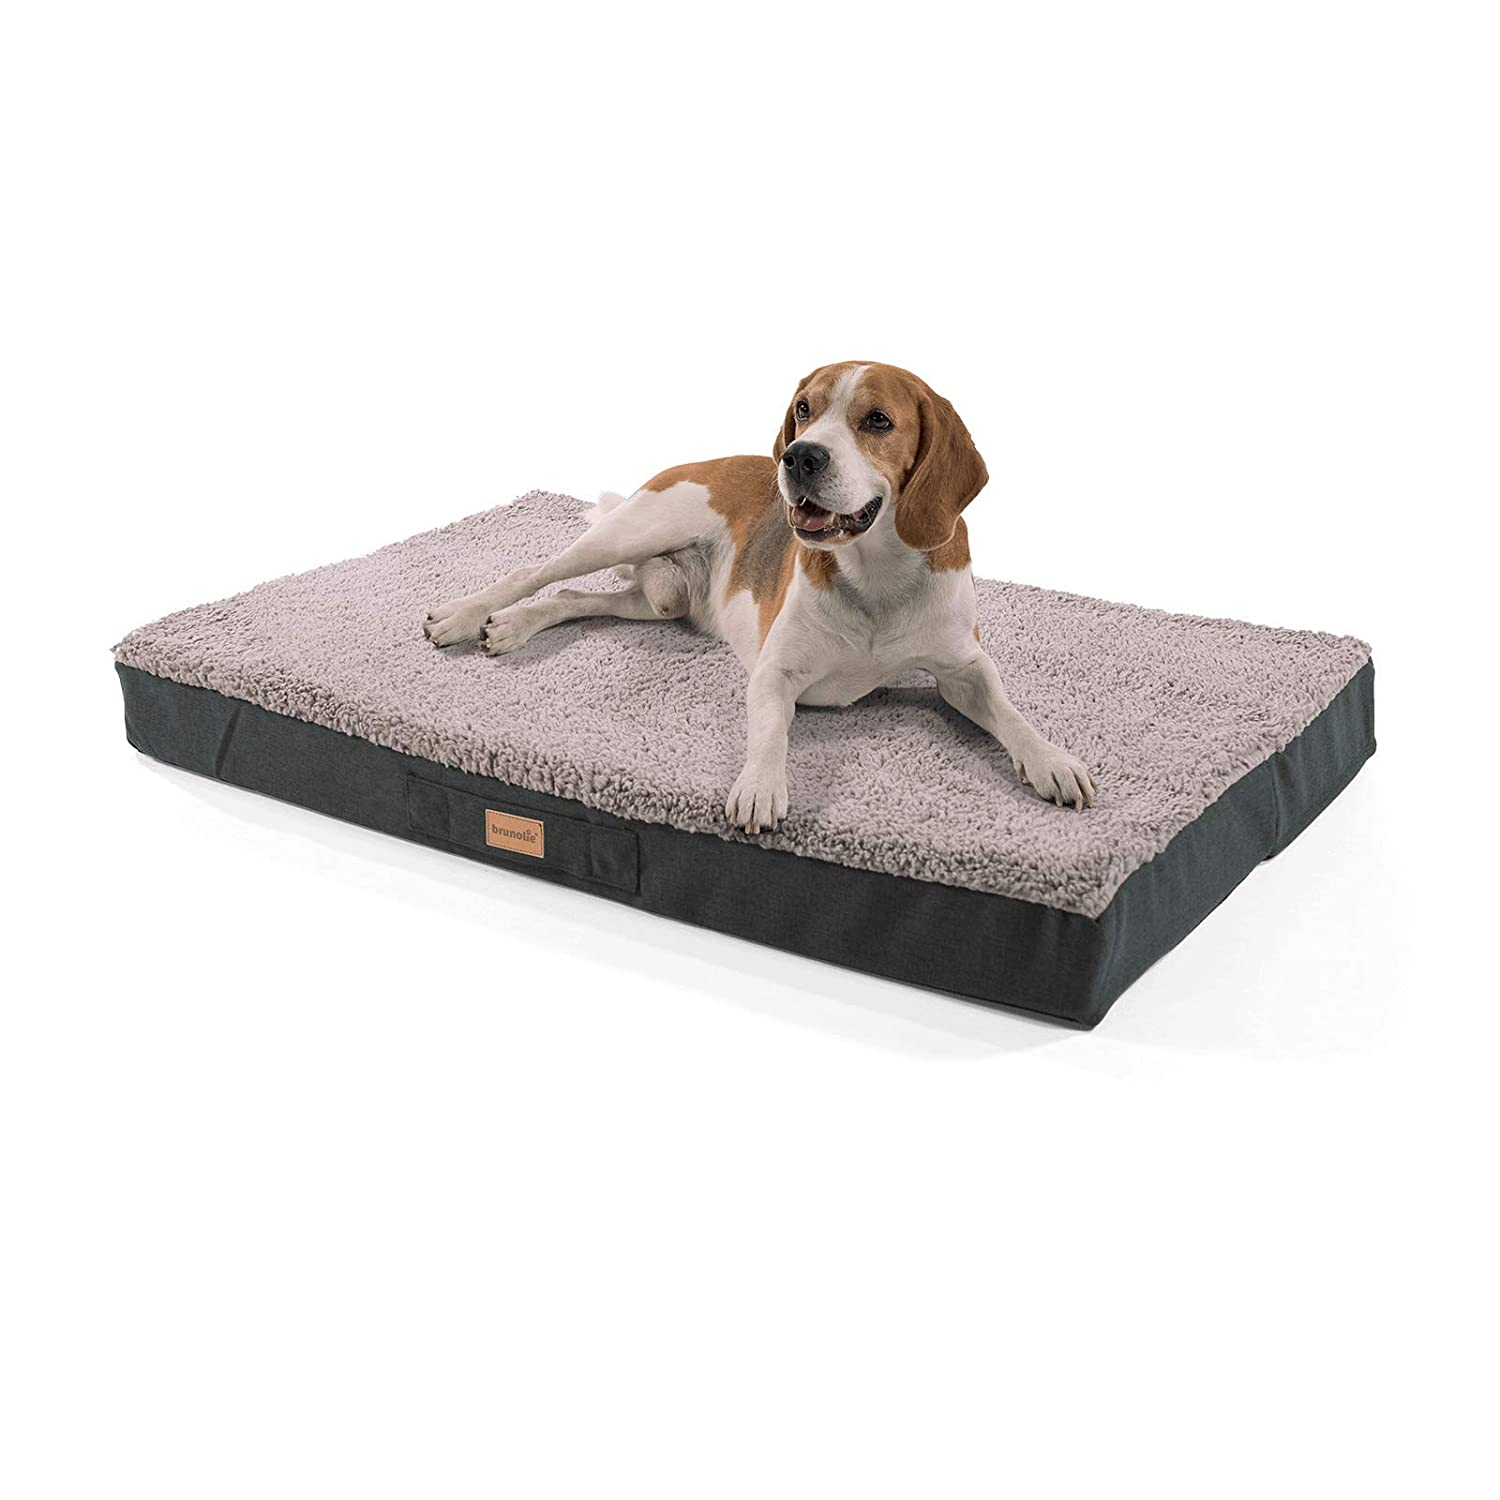 Grey large 100 x 65 cm grey large 100 x 65 cm brunolie  Balu small dog mat in grey – orthopaedic, washable and non-slip dog bed with cuddly plush, size L